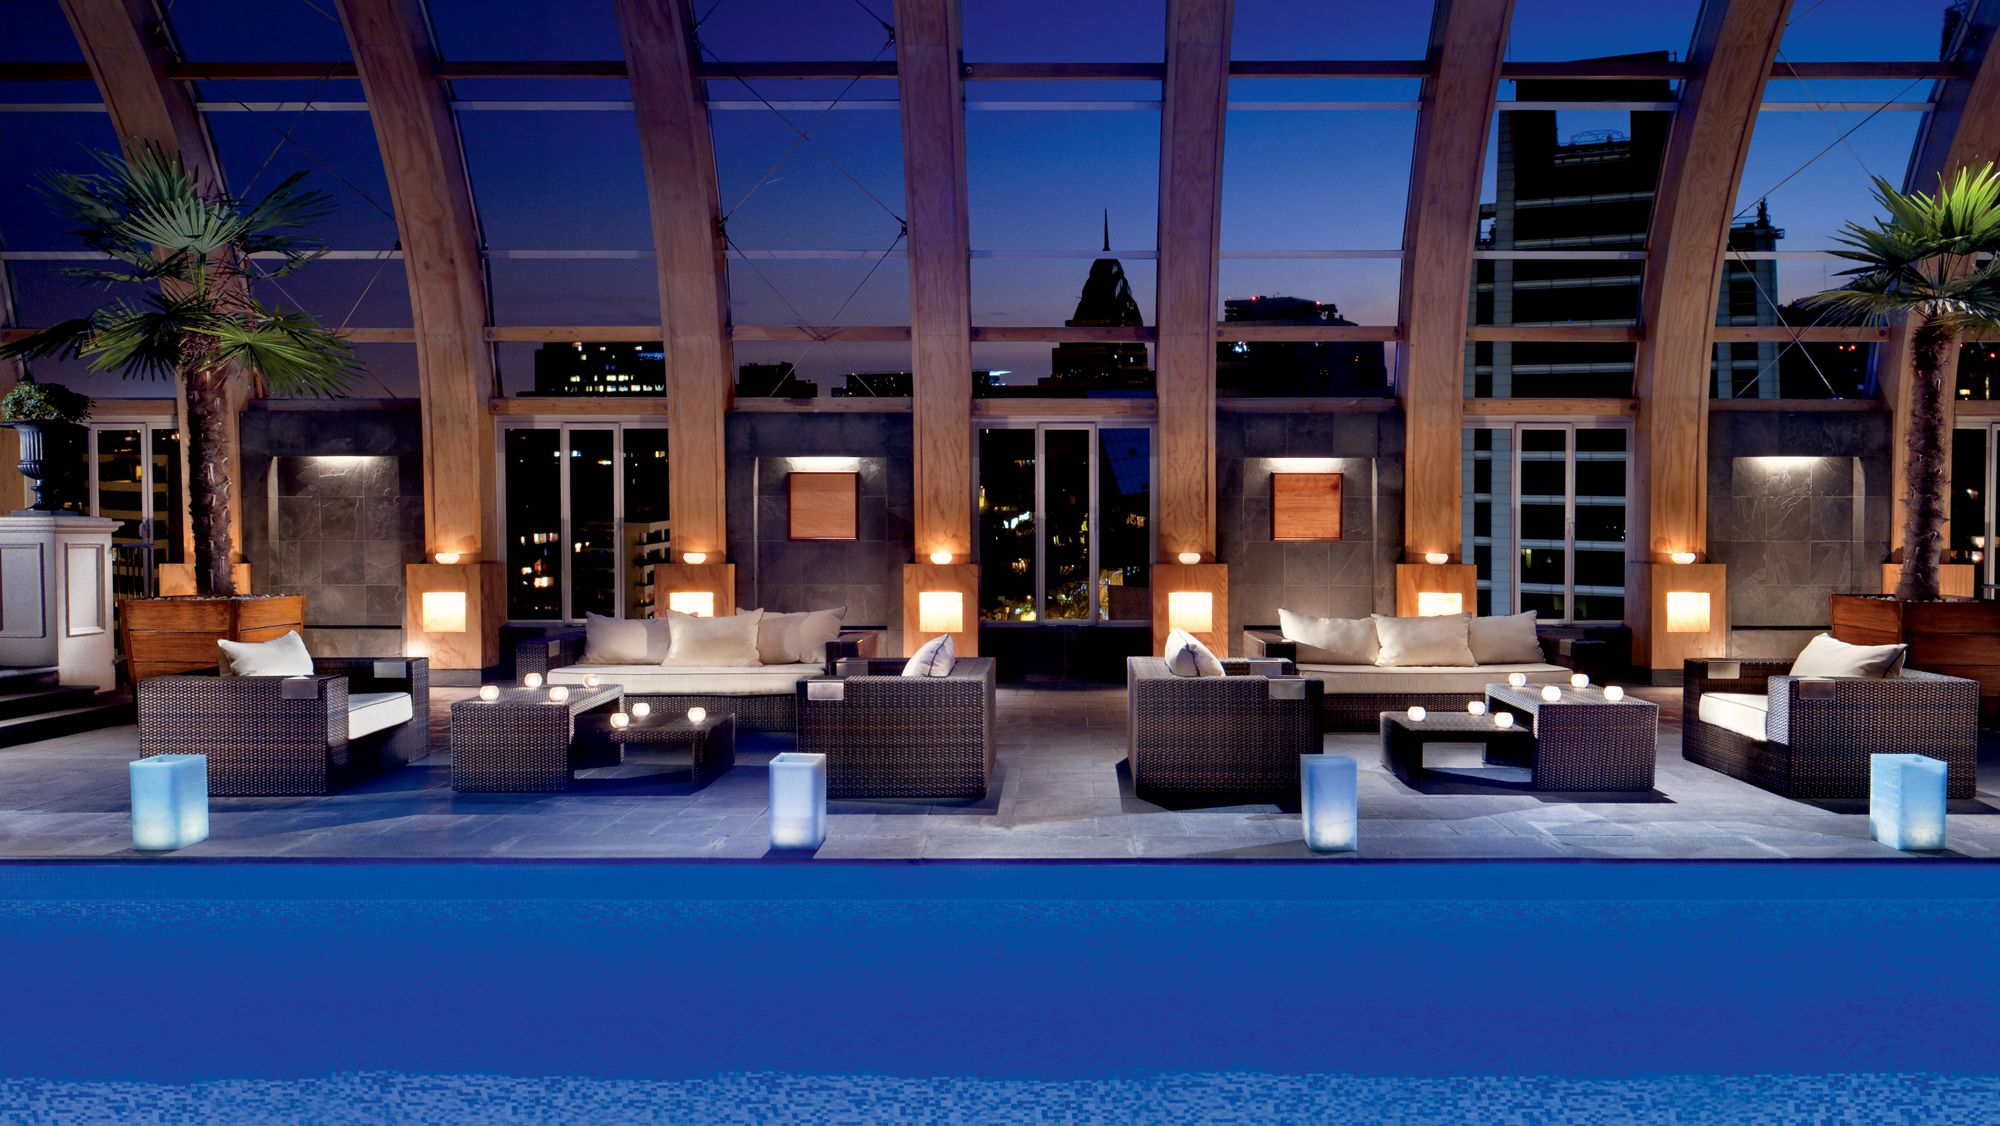 Ritz-Carlton Santiago Chile